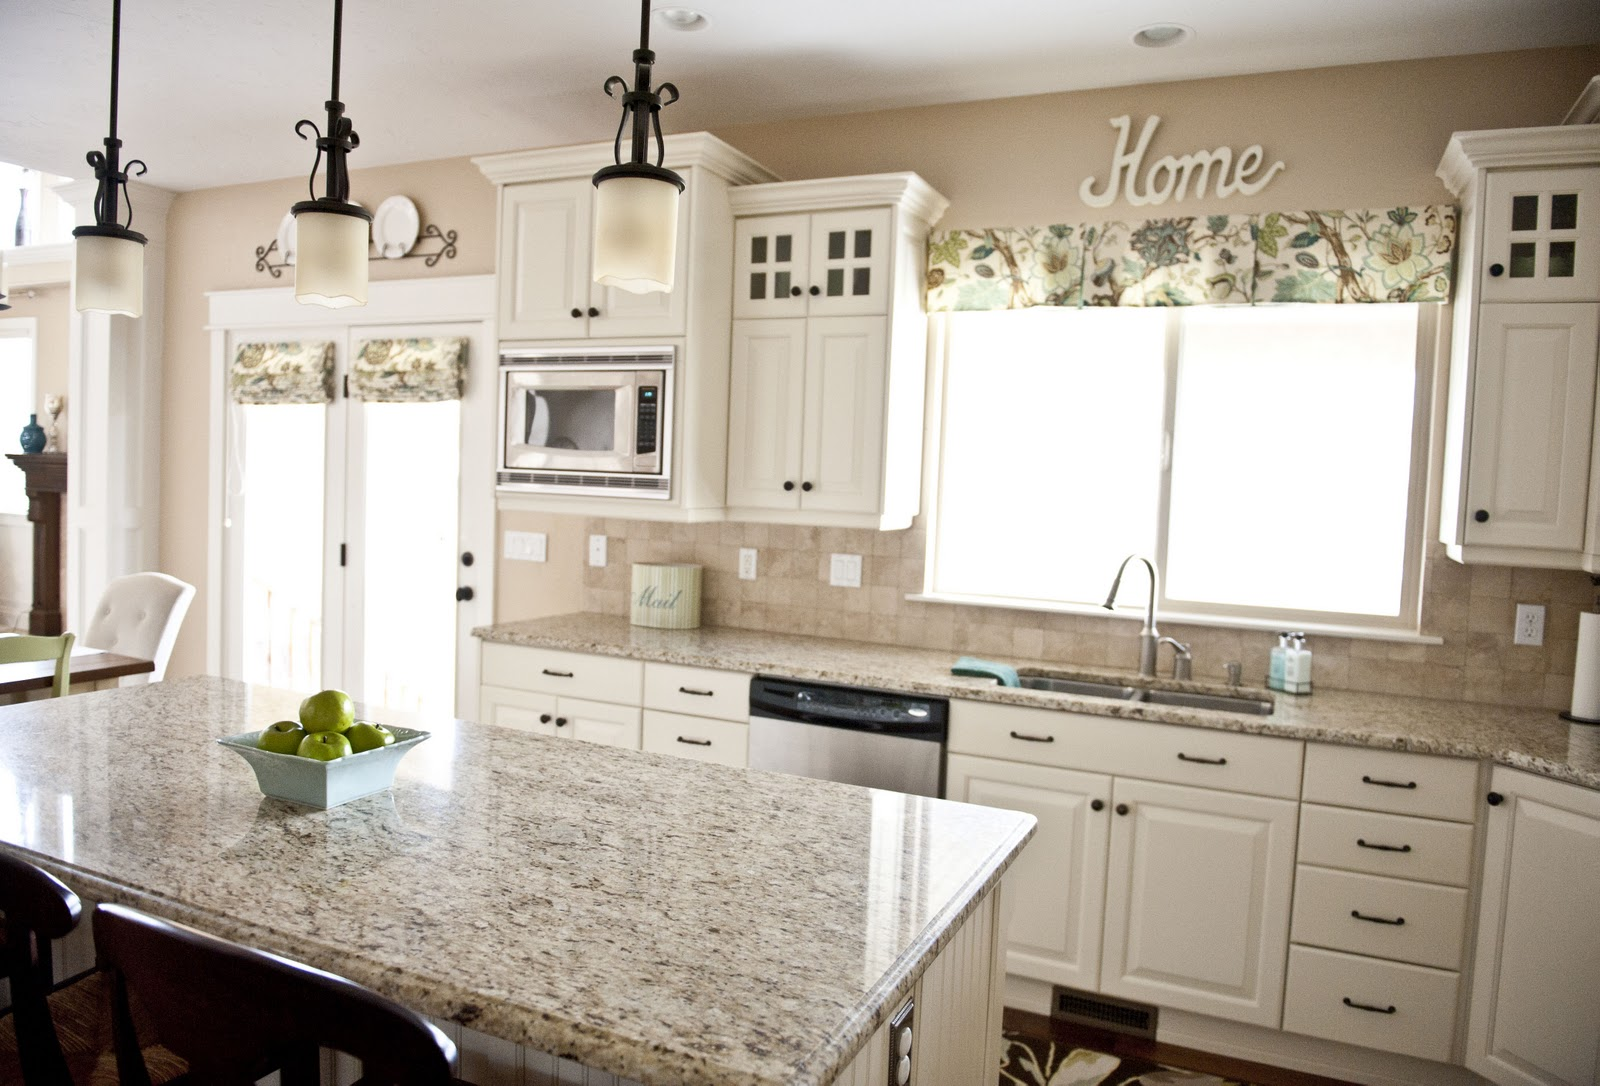 sita montgomery interiors my home tour kitchen. Black Bedroom Furniture Sets. Home Design Ideas